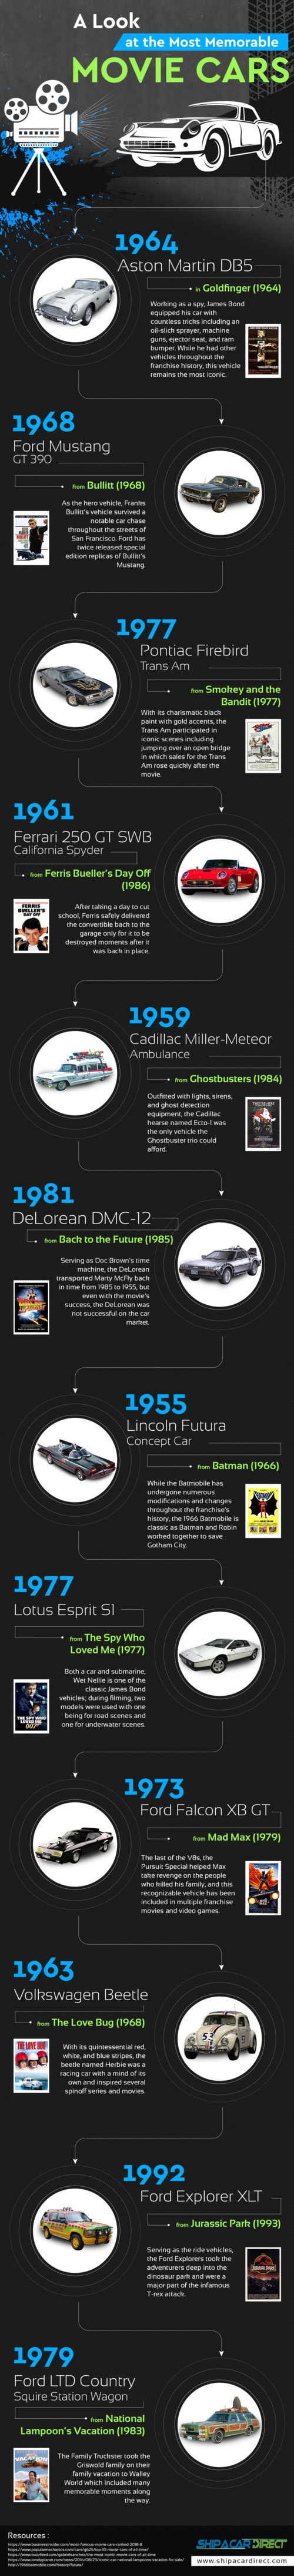 A Look at the Most Memorable Movie Cars - An infographic                                                                          Vi... via David Eaves